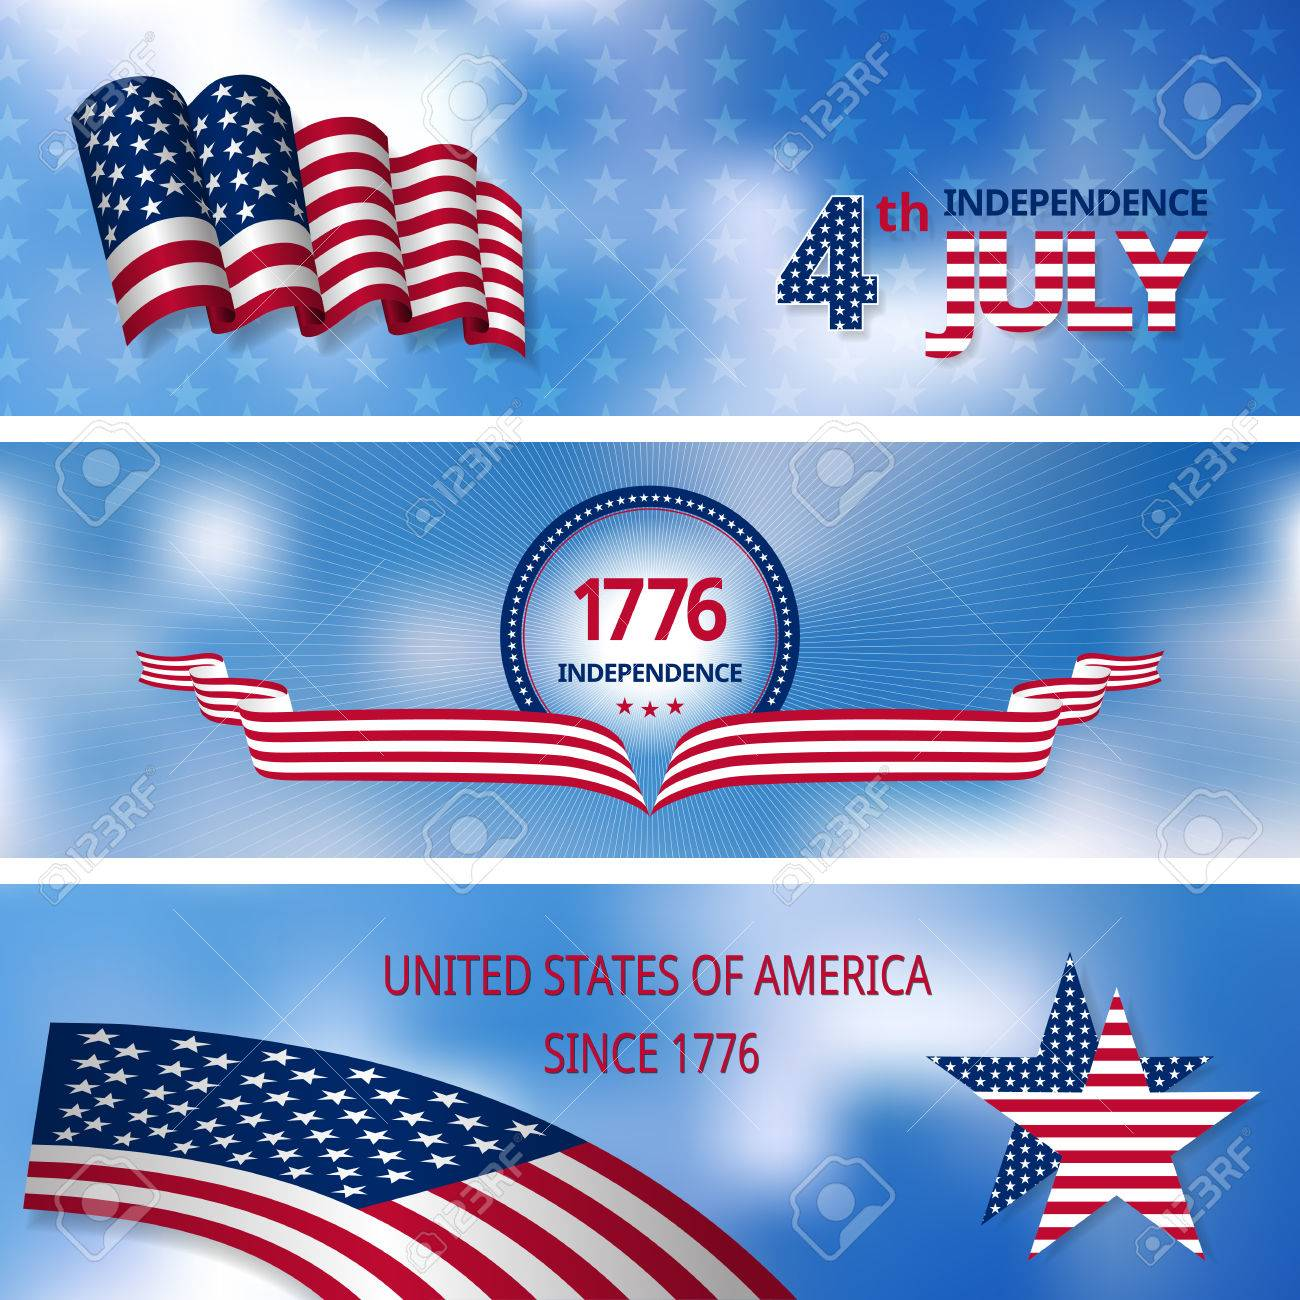 Three Banners With The Symbol Of Americas Independence Flag Stars